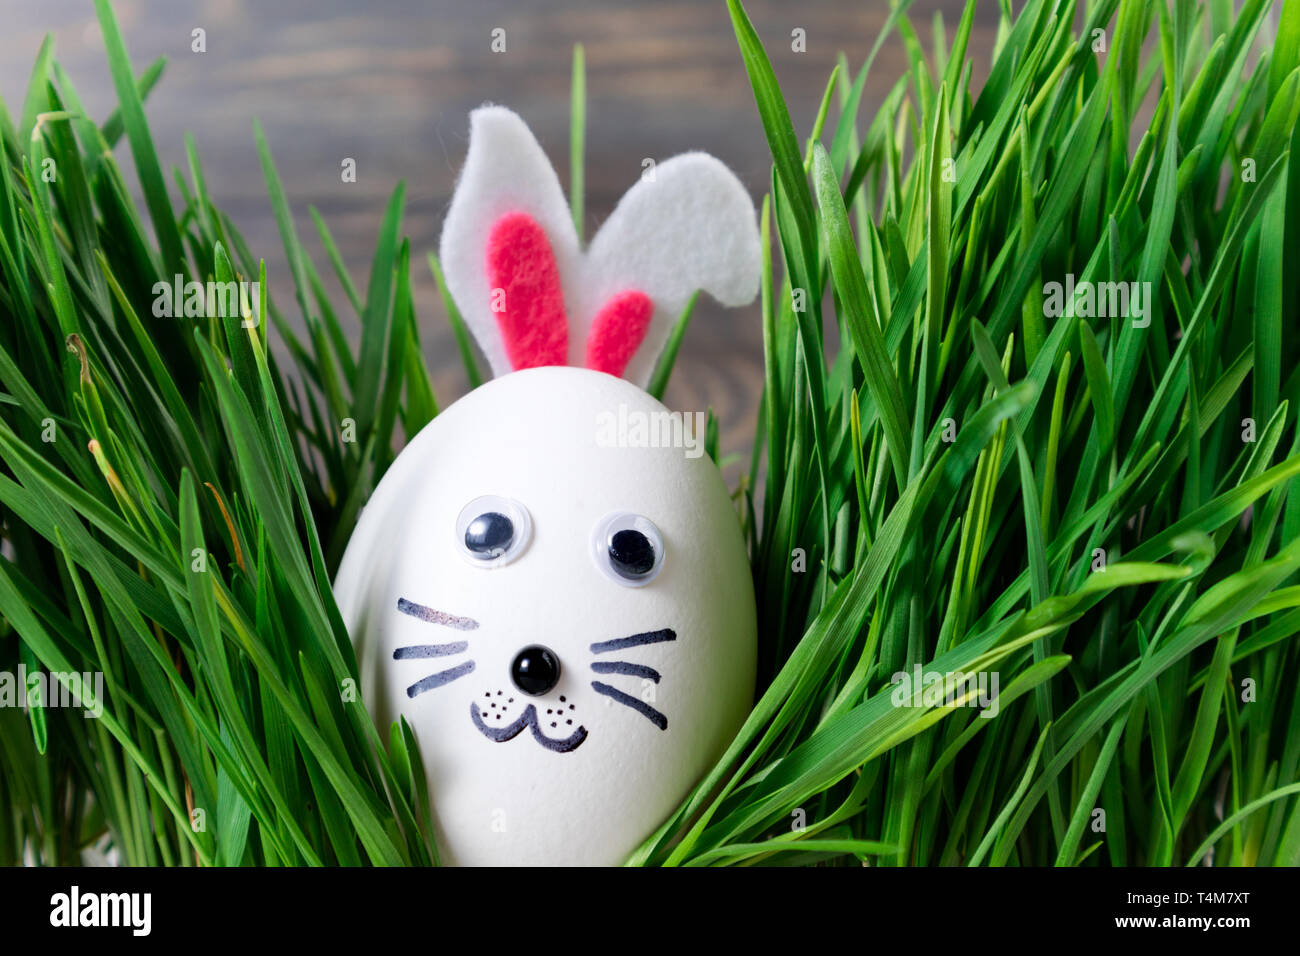 Funny Easter Eggs Cute Bunny In The Grass Happy Easter Background Creative Easter Egg Decoration Ideas With Easter Bunny Stock Photo Alamy